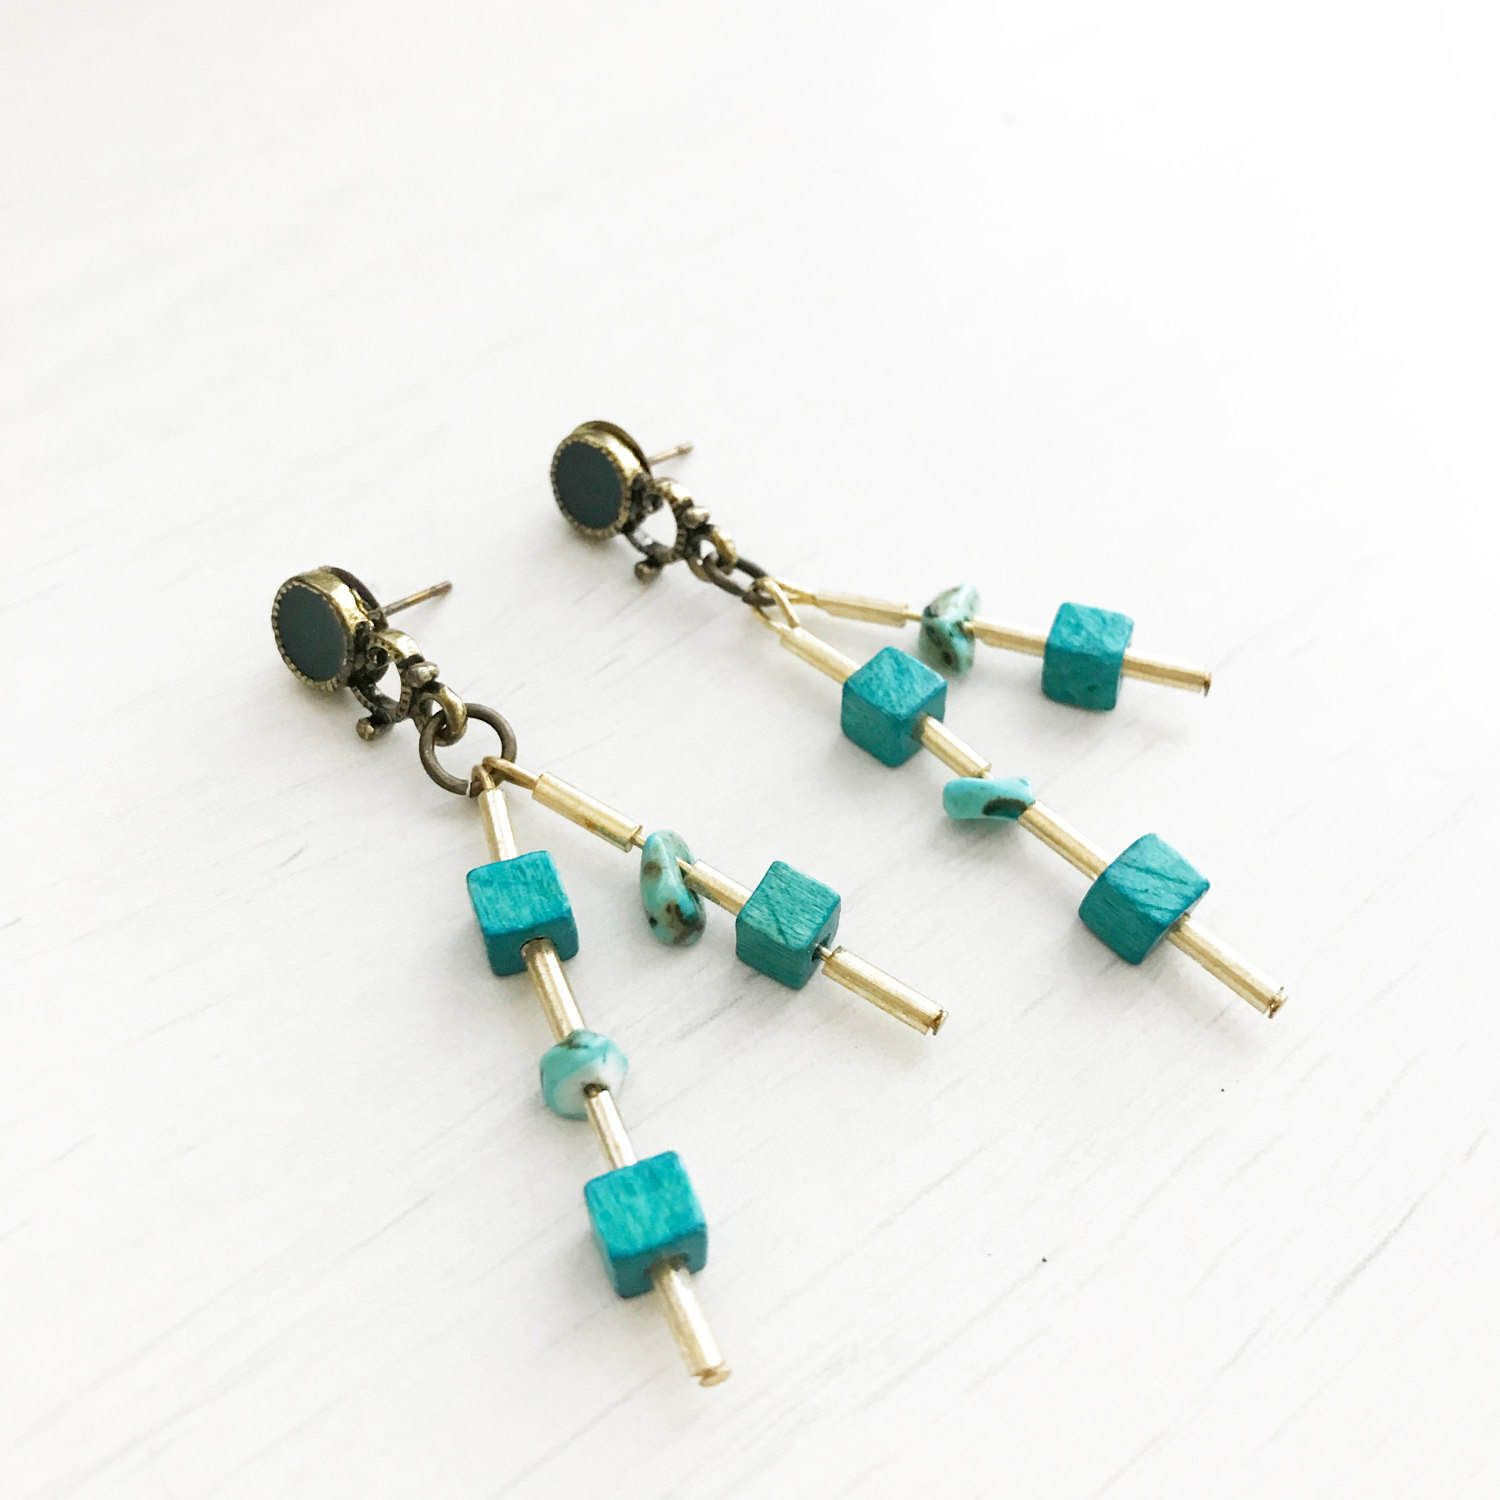 d5b495850 Fiona Earrings // Turquoise Semi Precious Stones by Plumeuphoria on Etsy